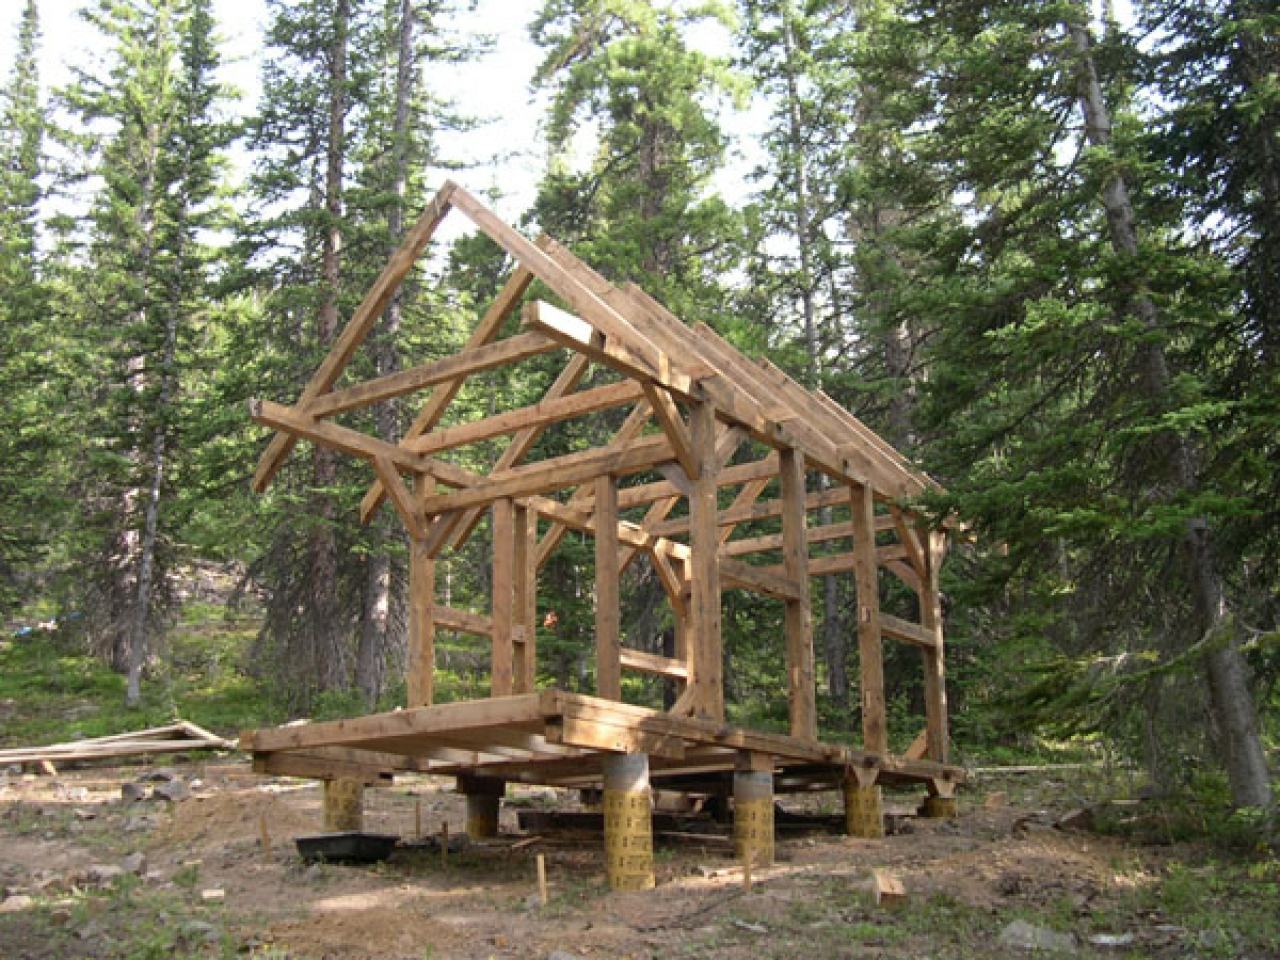 Small Cabin Plan Build Yourself Small Cabin Building Plans: Timber Frame Homes Building A Small Timber Frame Cabin